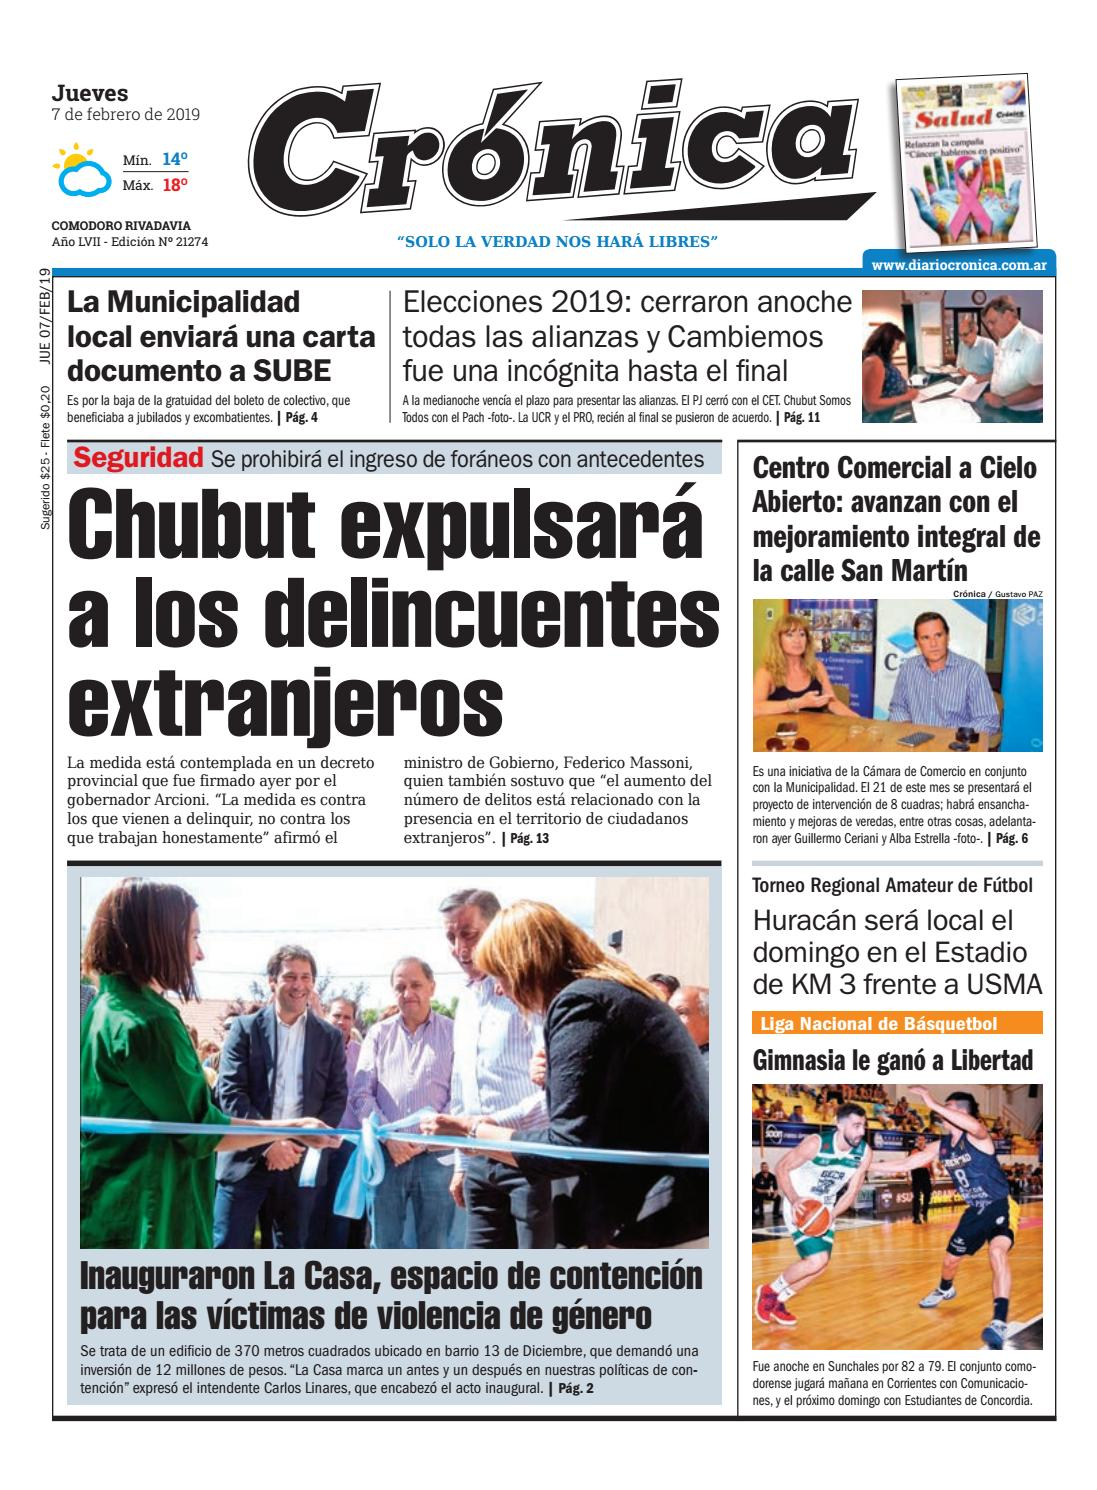 Diario cronica 07 02 2019 by Diario Crónica - issuu